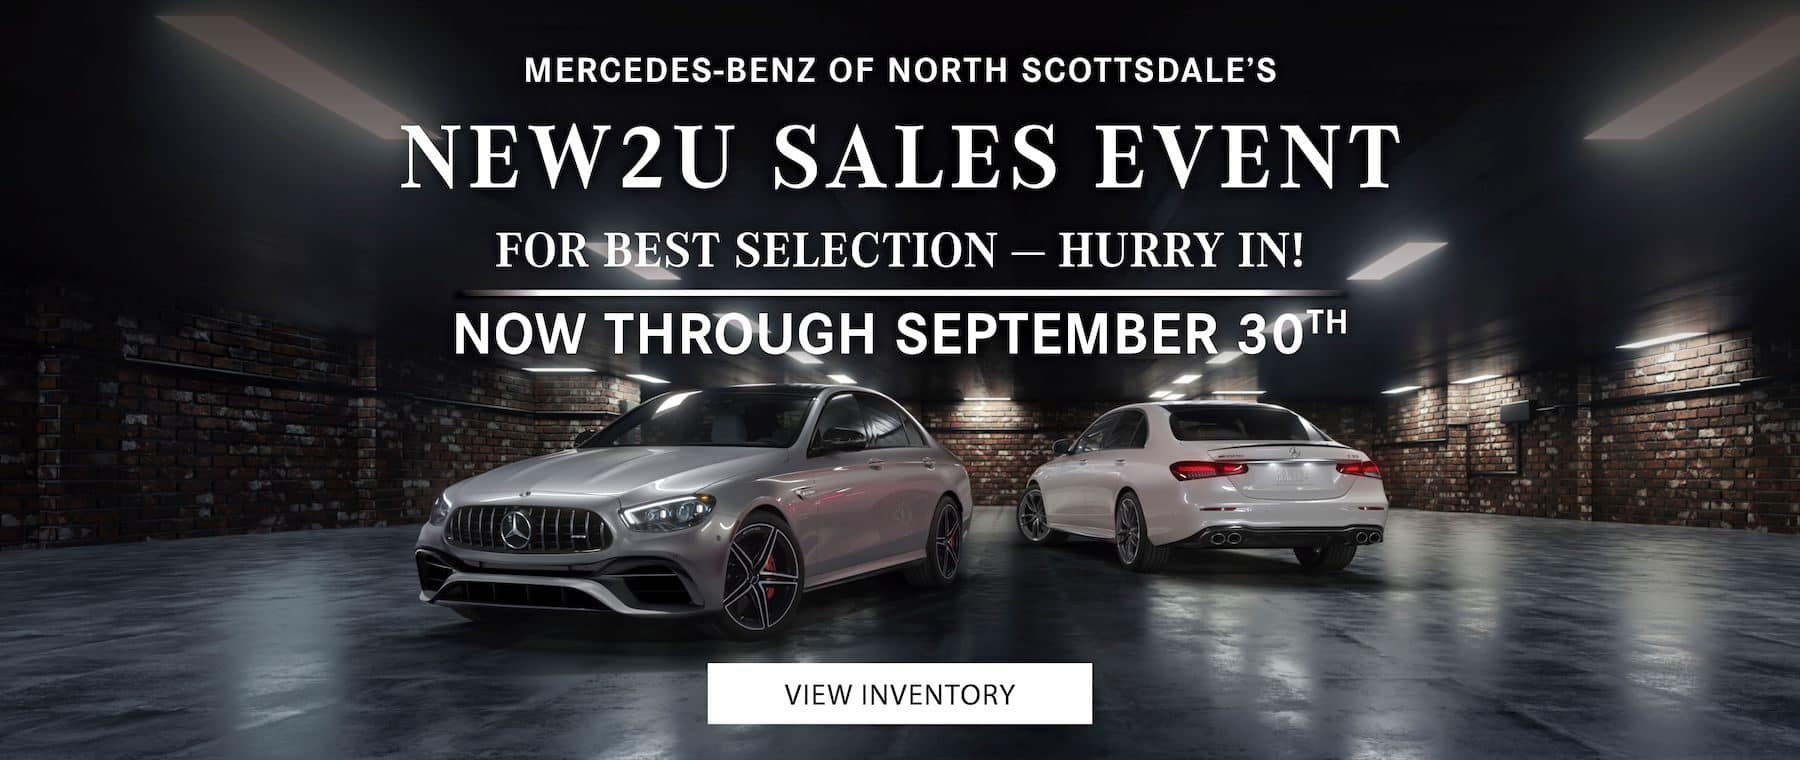 New To You Sales Event - Now Through September 30!